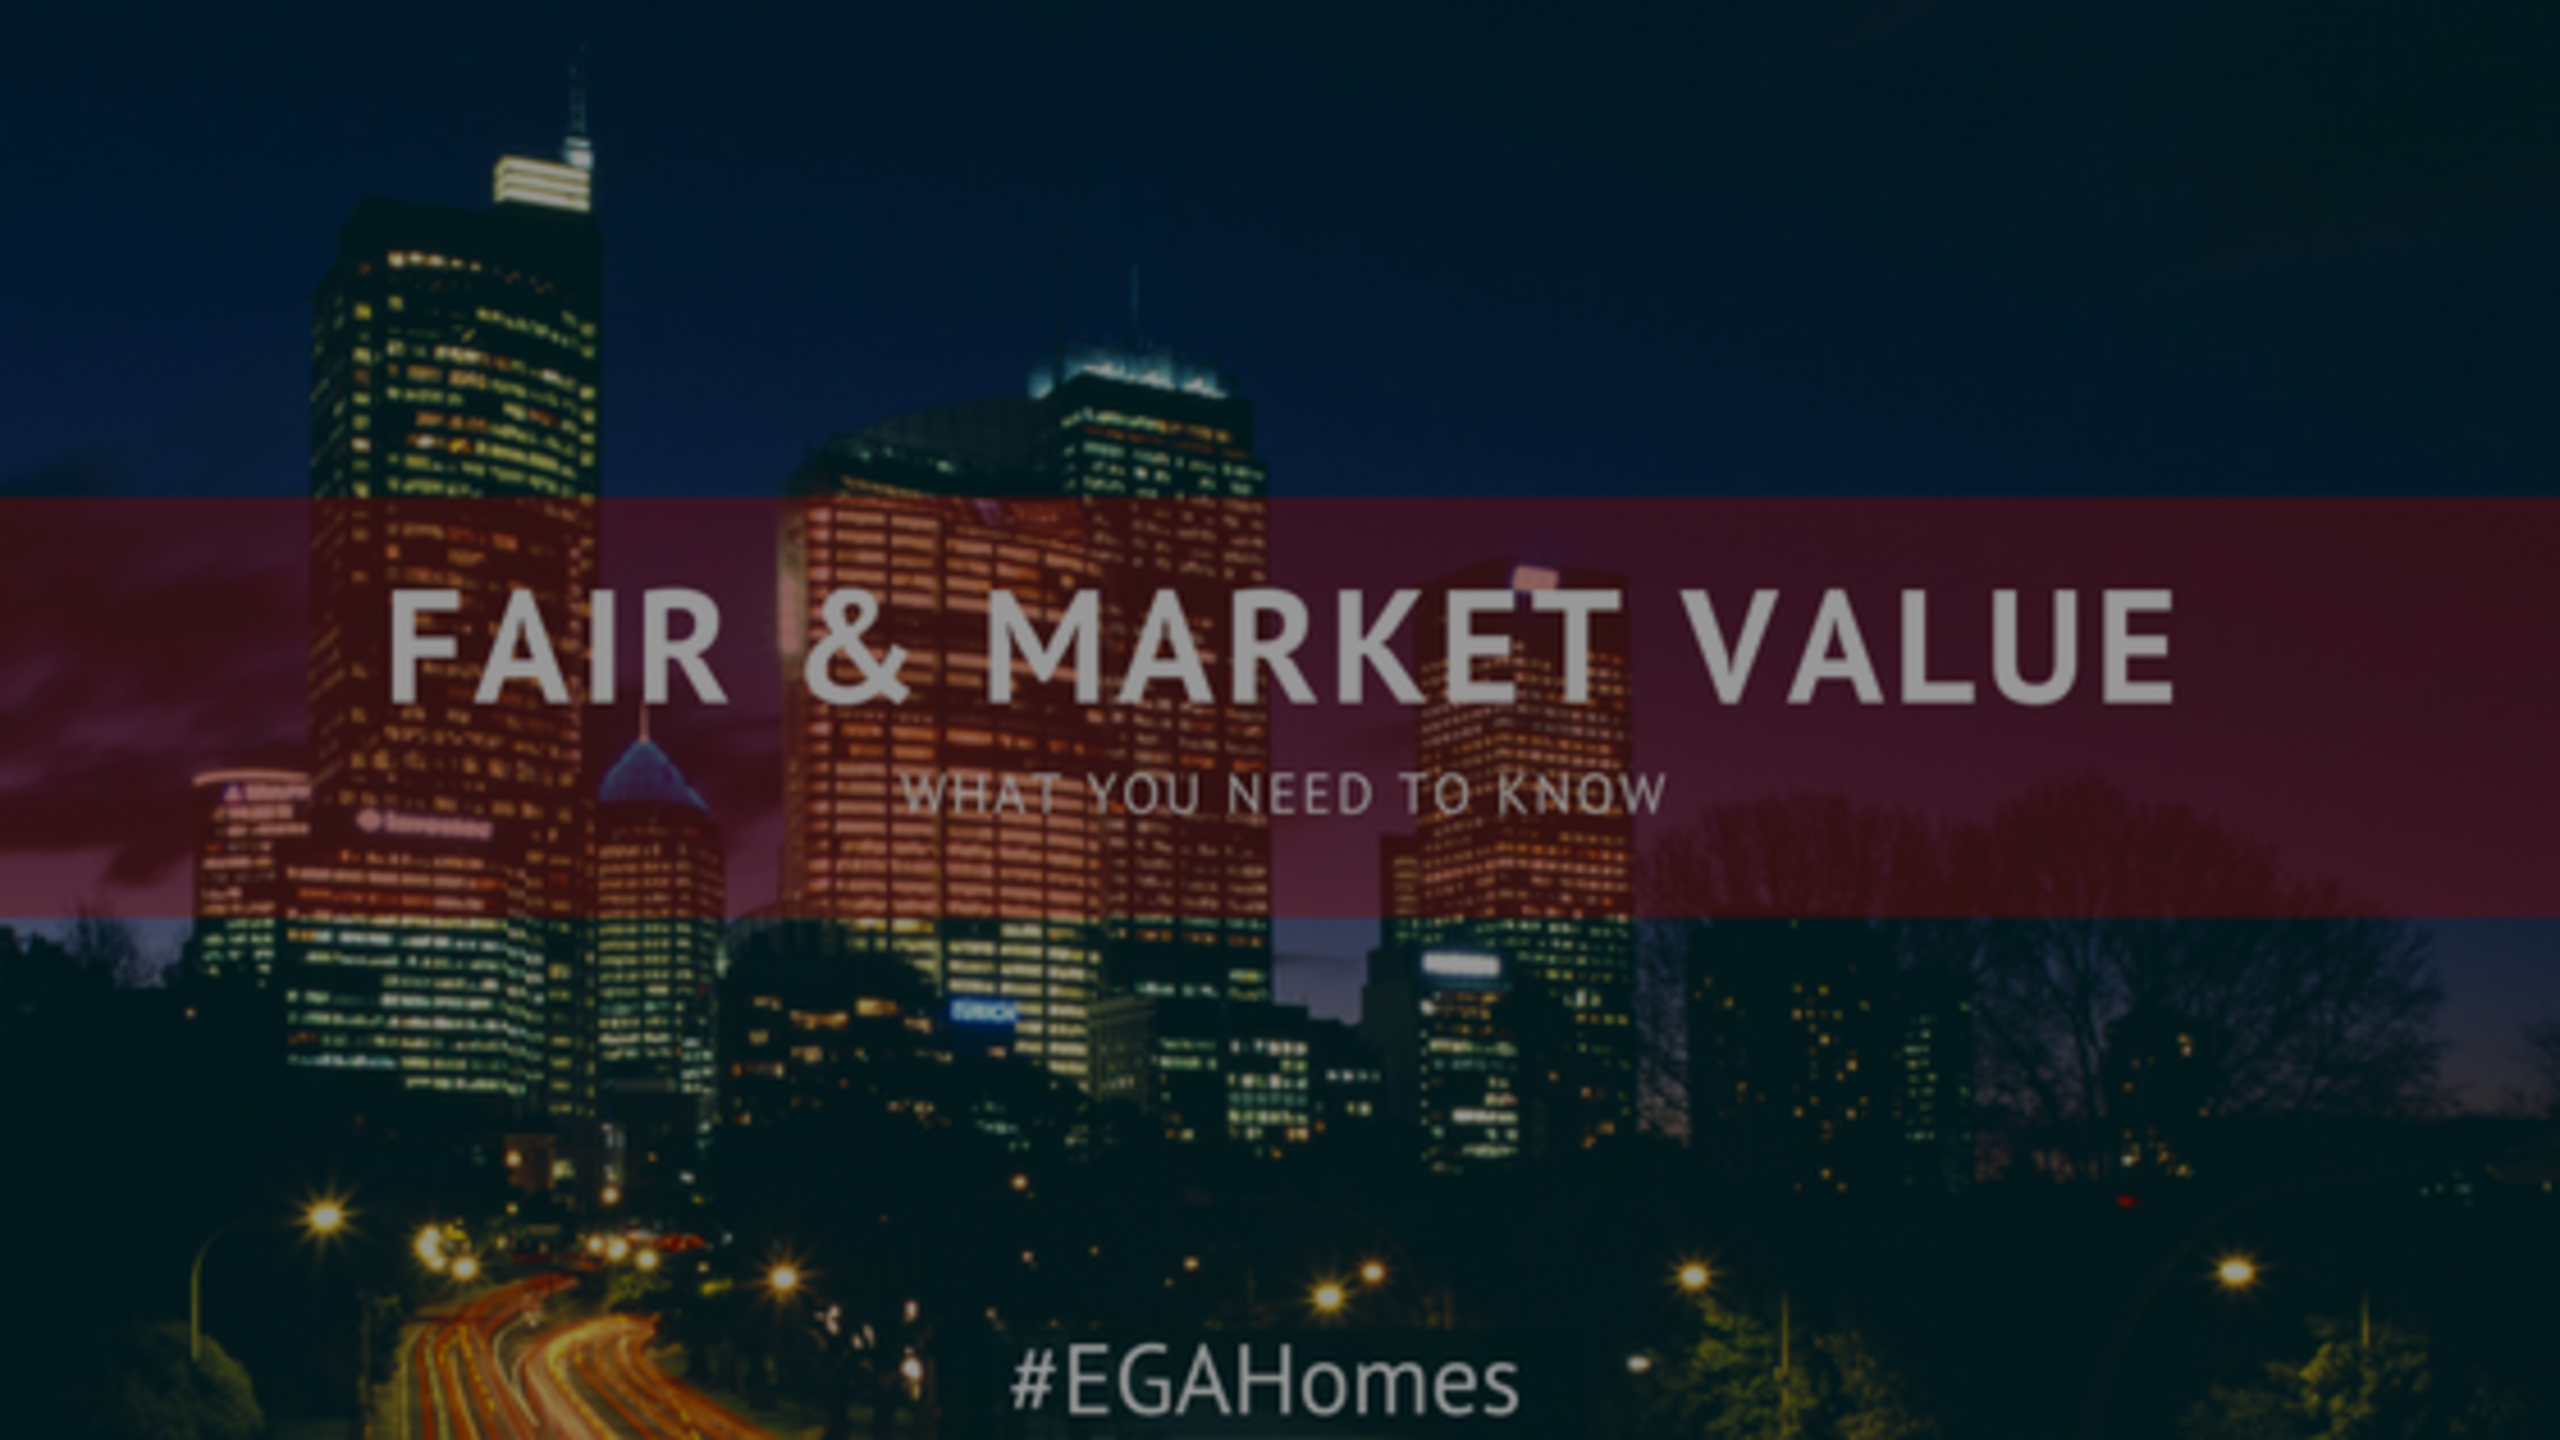 Do I Need To Know About Fair Market Value?